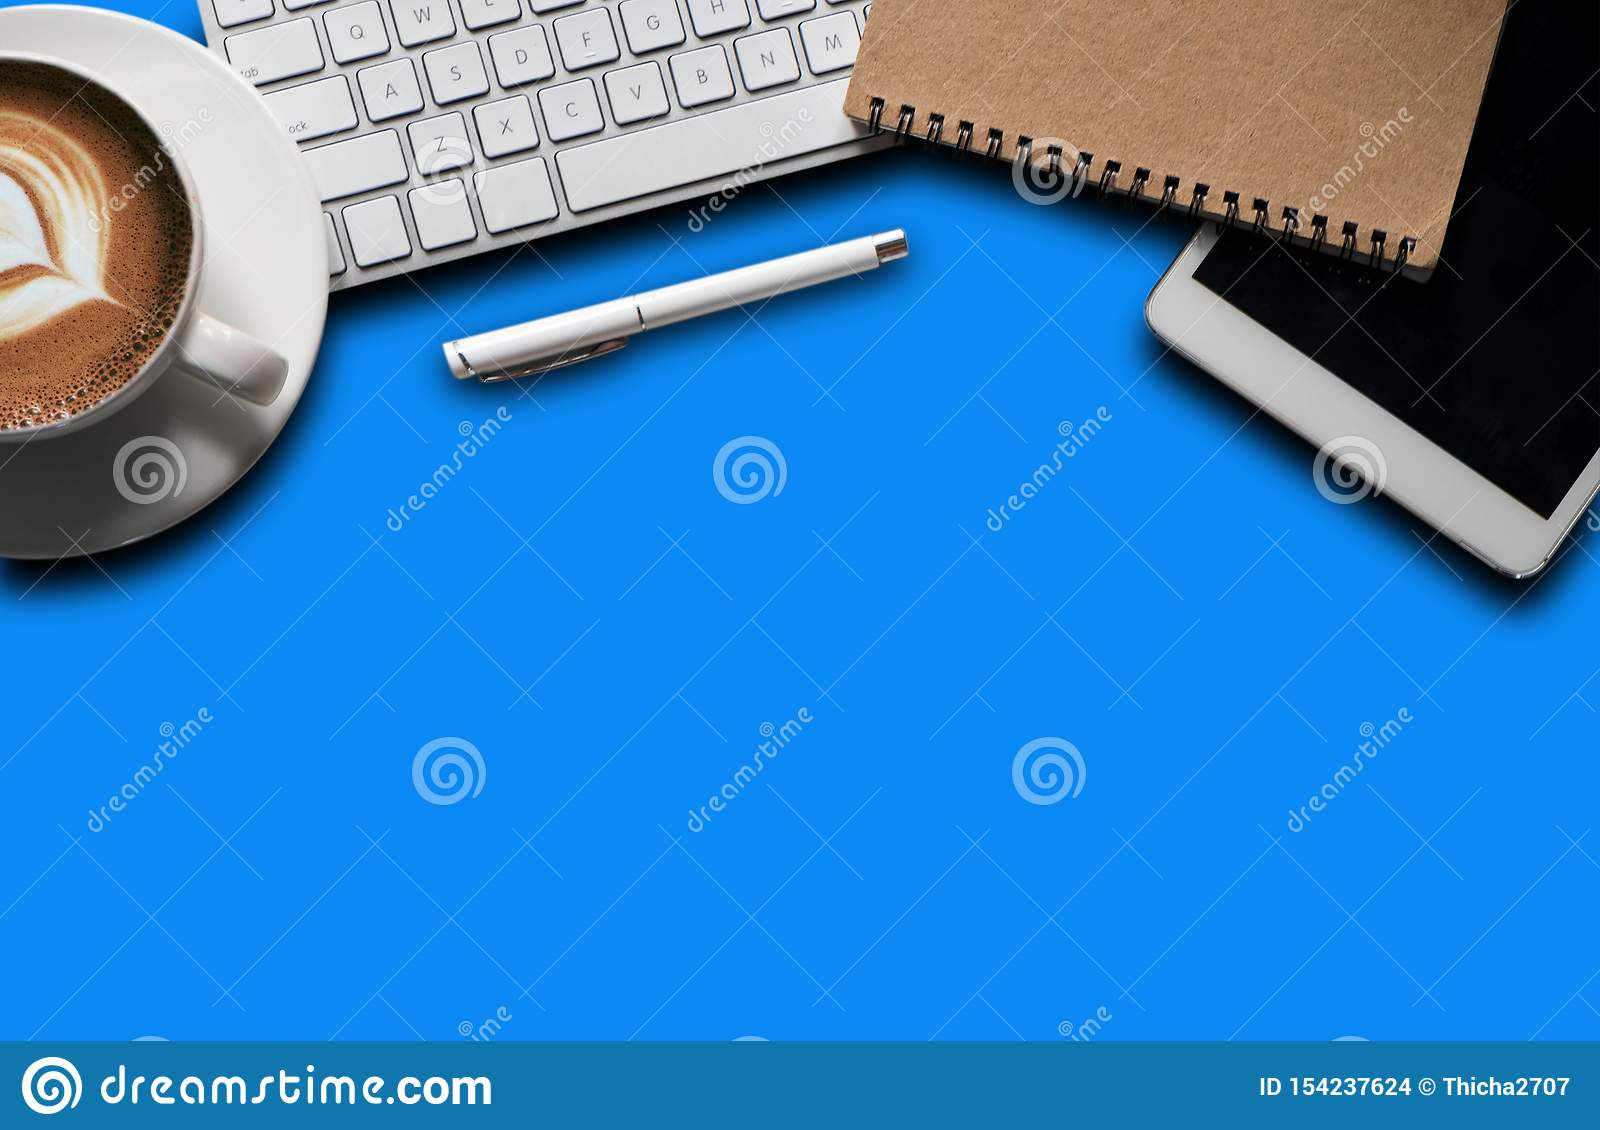 Office supplies with a laptop, smartphone, pen, tablet, notebook.